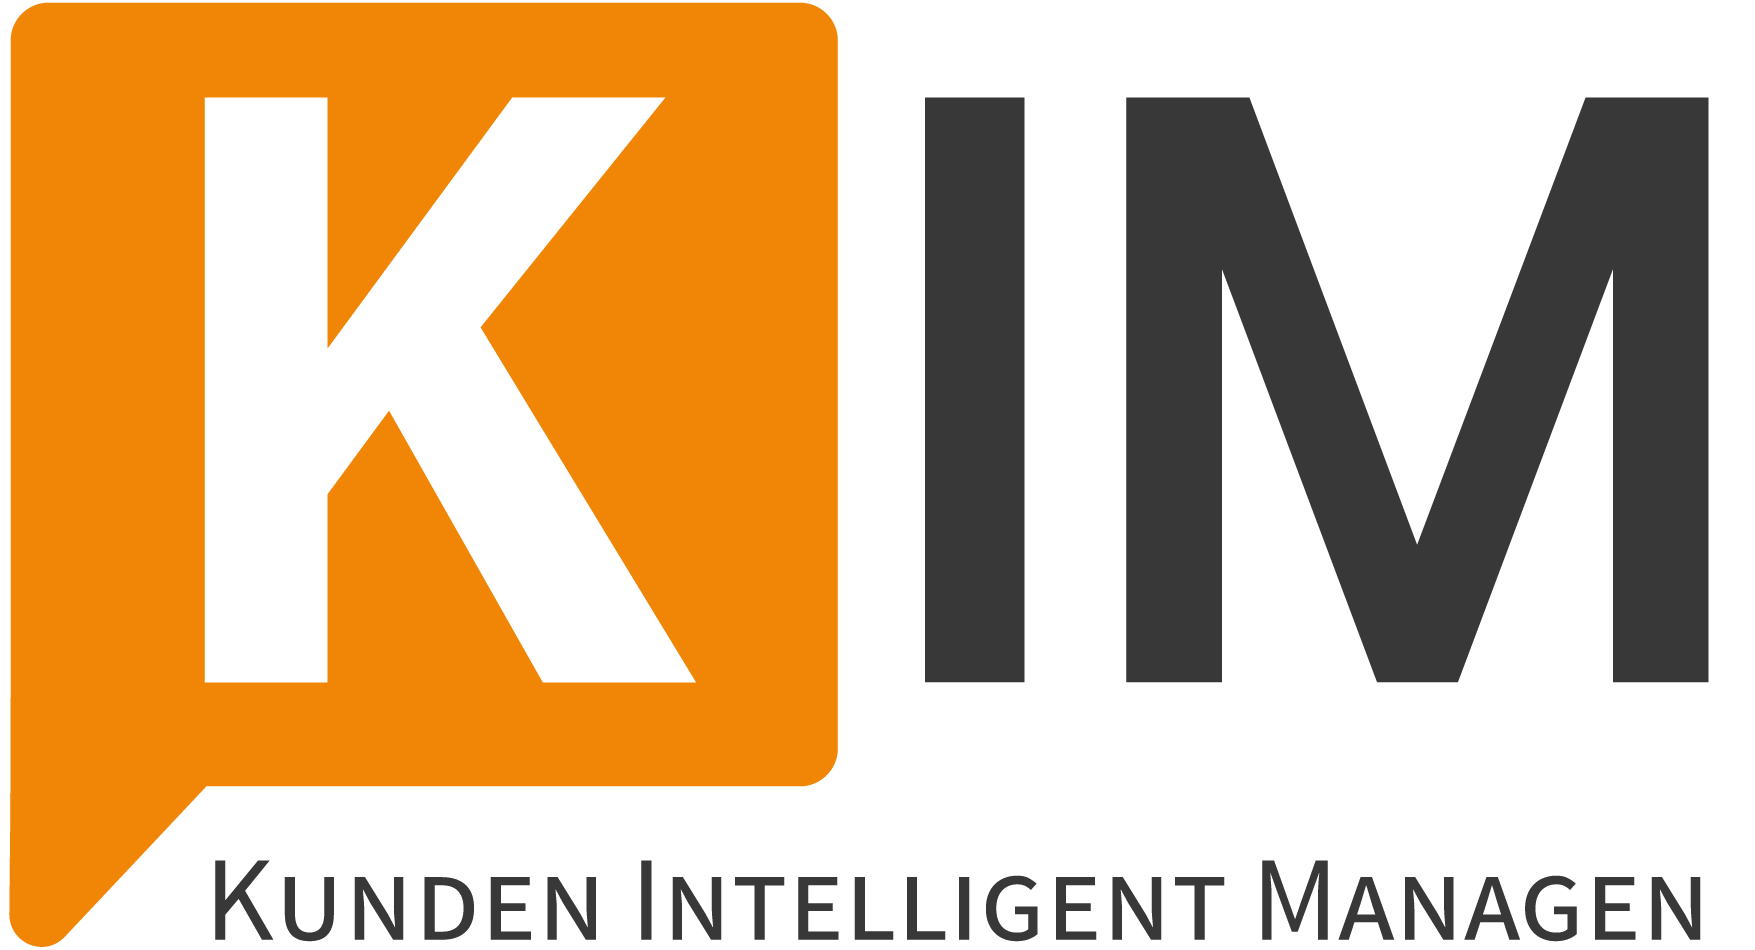 KIM - Kunden Intelligent Managen